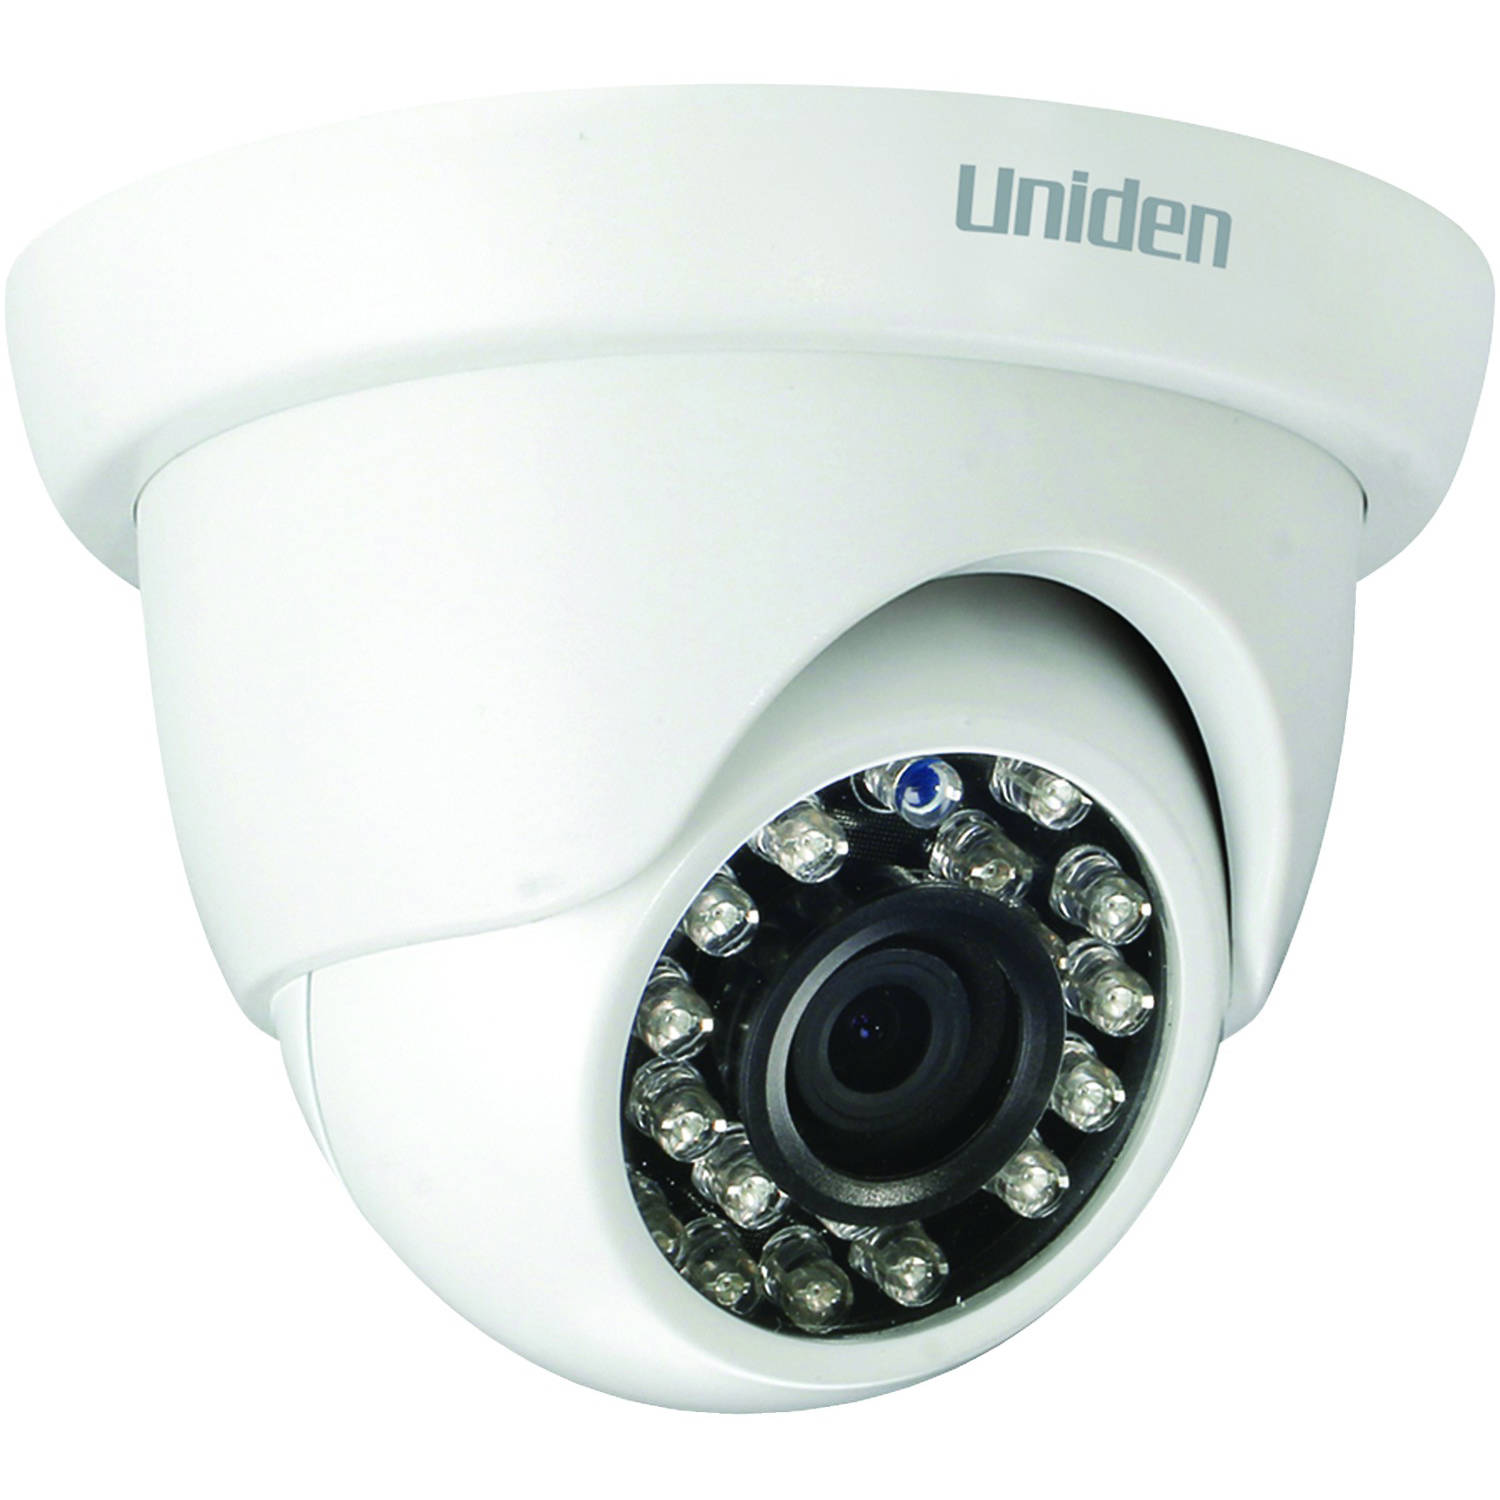 Uniden Guardian G710DC Dome Accessory Camera